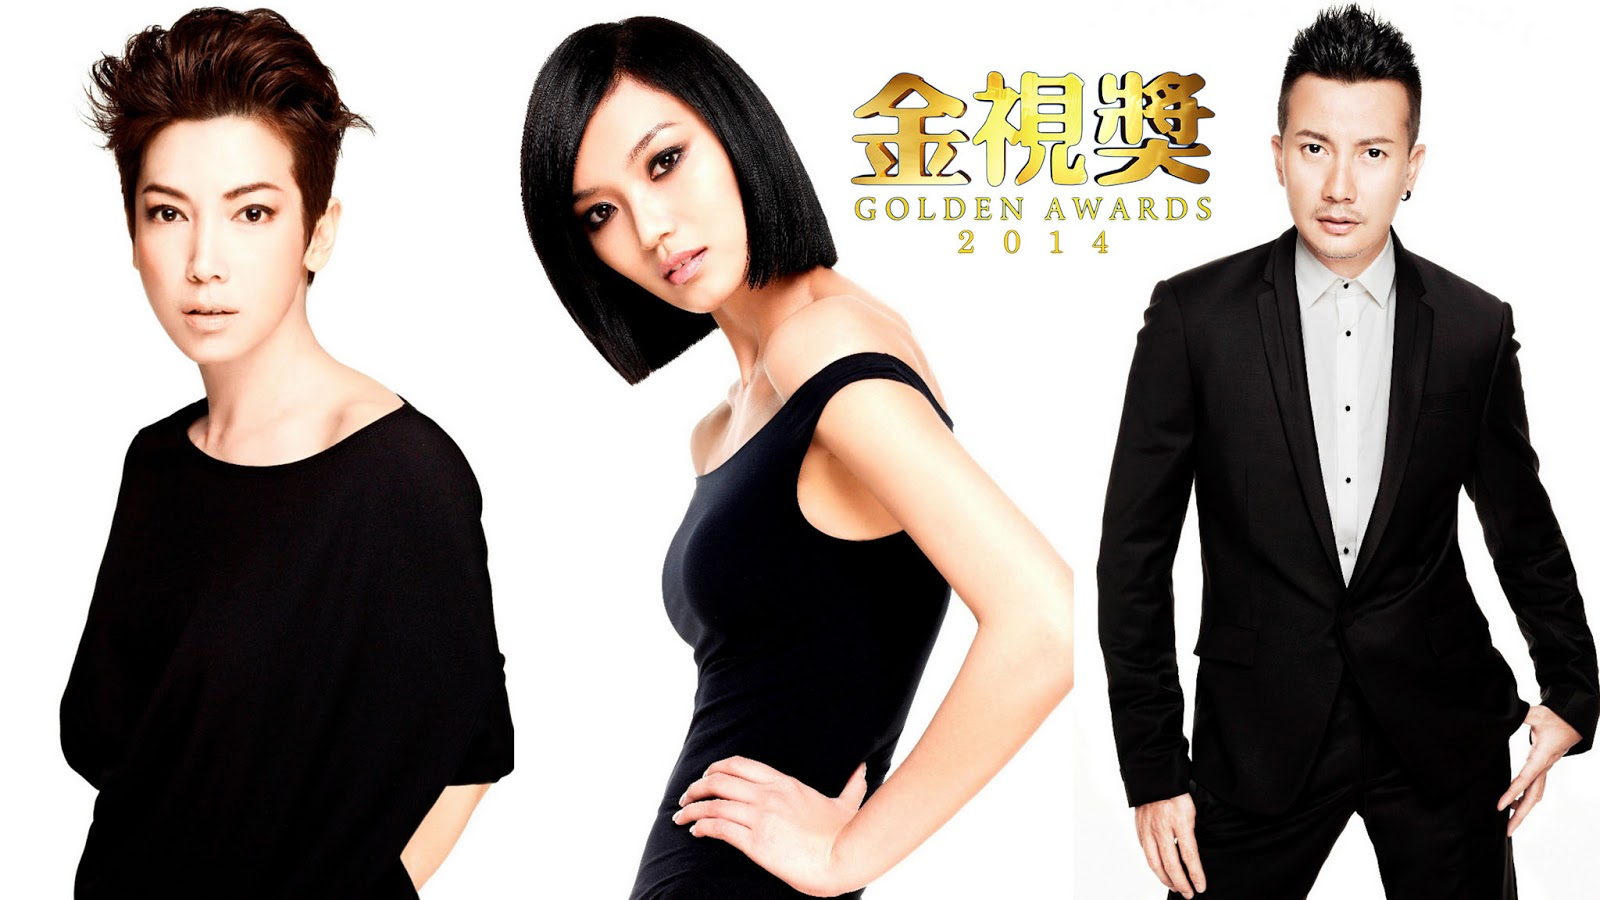 Kym Ng 钟琴, Joanne Peh 白薇秀 and Chen Han Wei 陈汉玮 coming to Golden Awards 2014